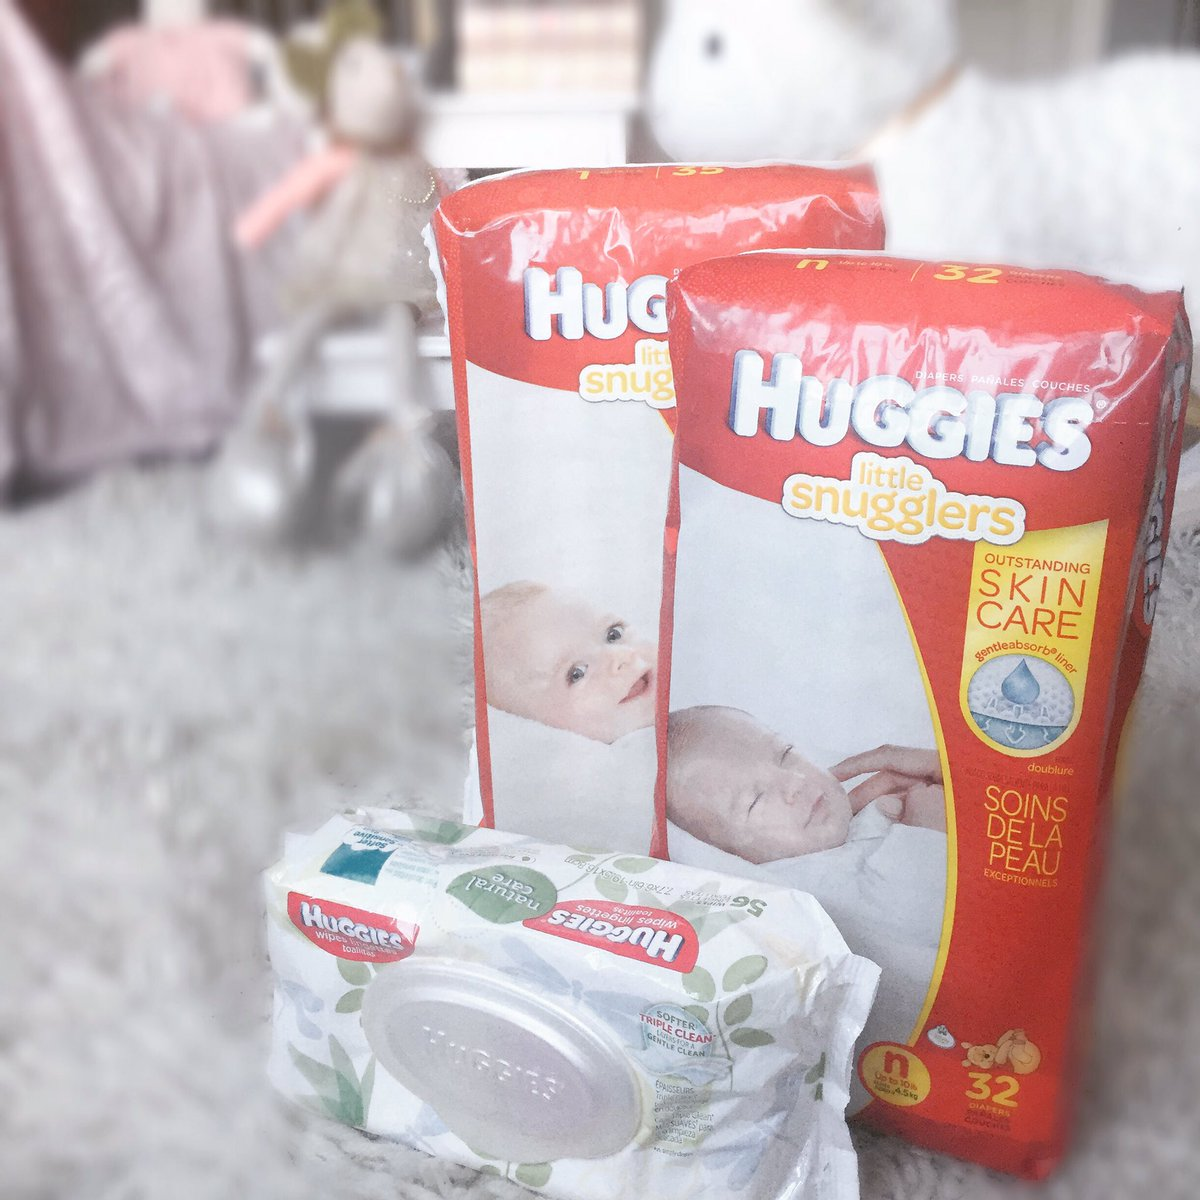 Loving Huggies #NoBabyUnhugged initiative. When my baby girl is born she will be placed on me asap for her first hug https://t.co/6Dvm8Mzv6o https://t.co/rZF46LwvC7